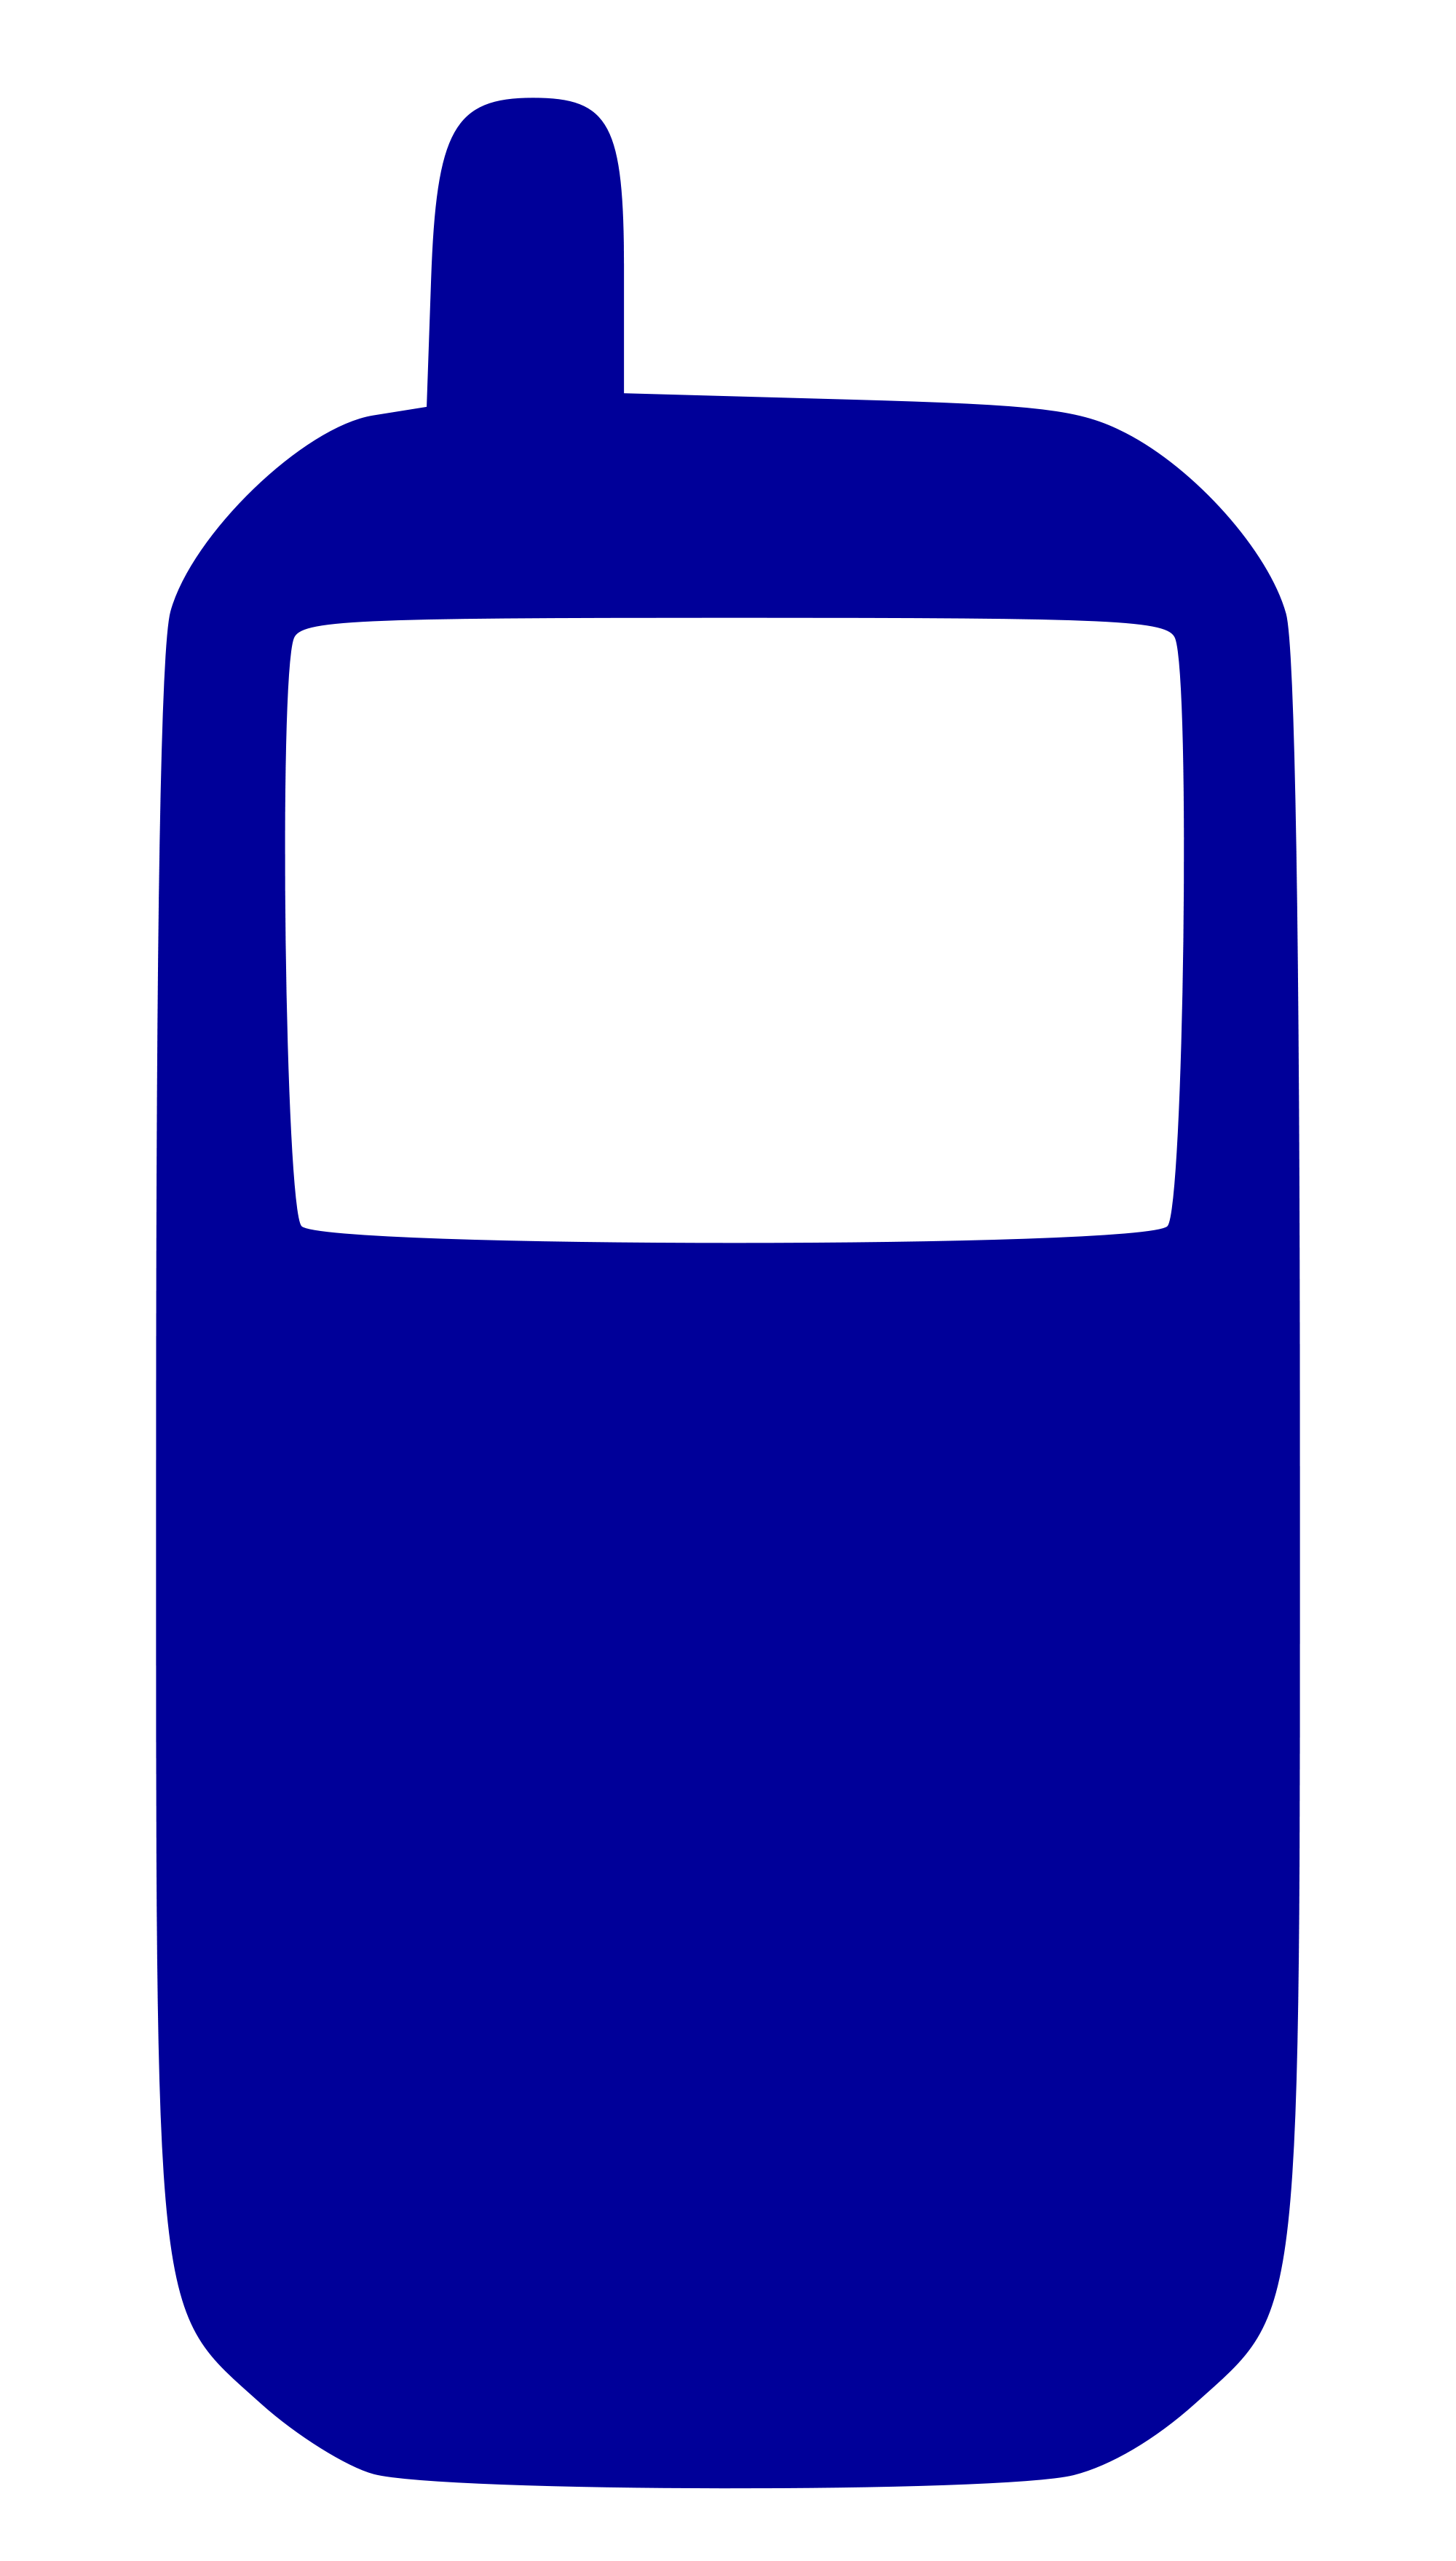 Telephone clipart blue. File cell phone icon